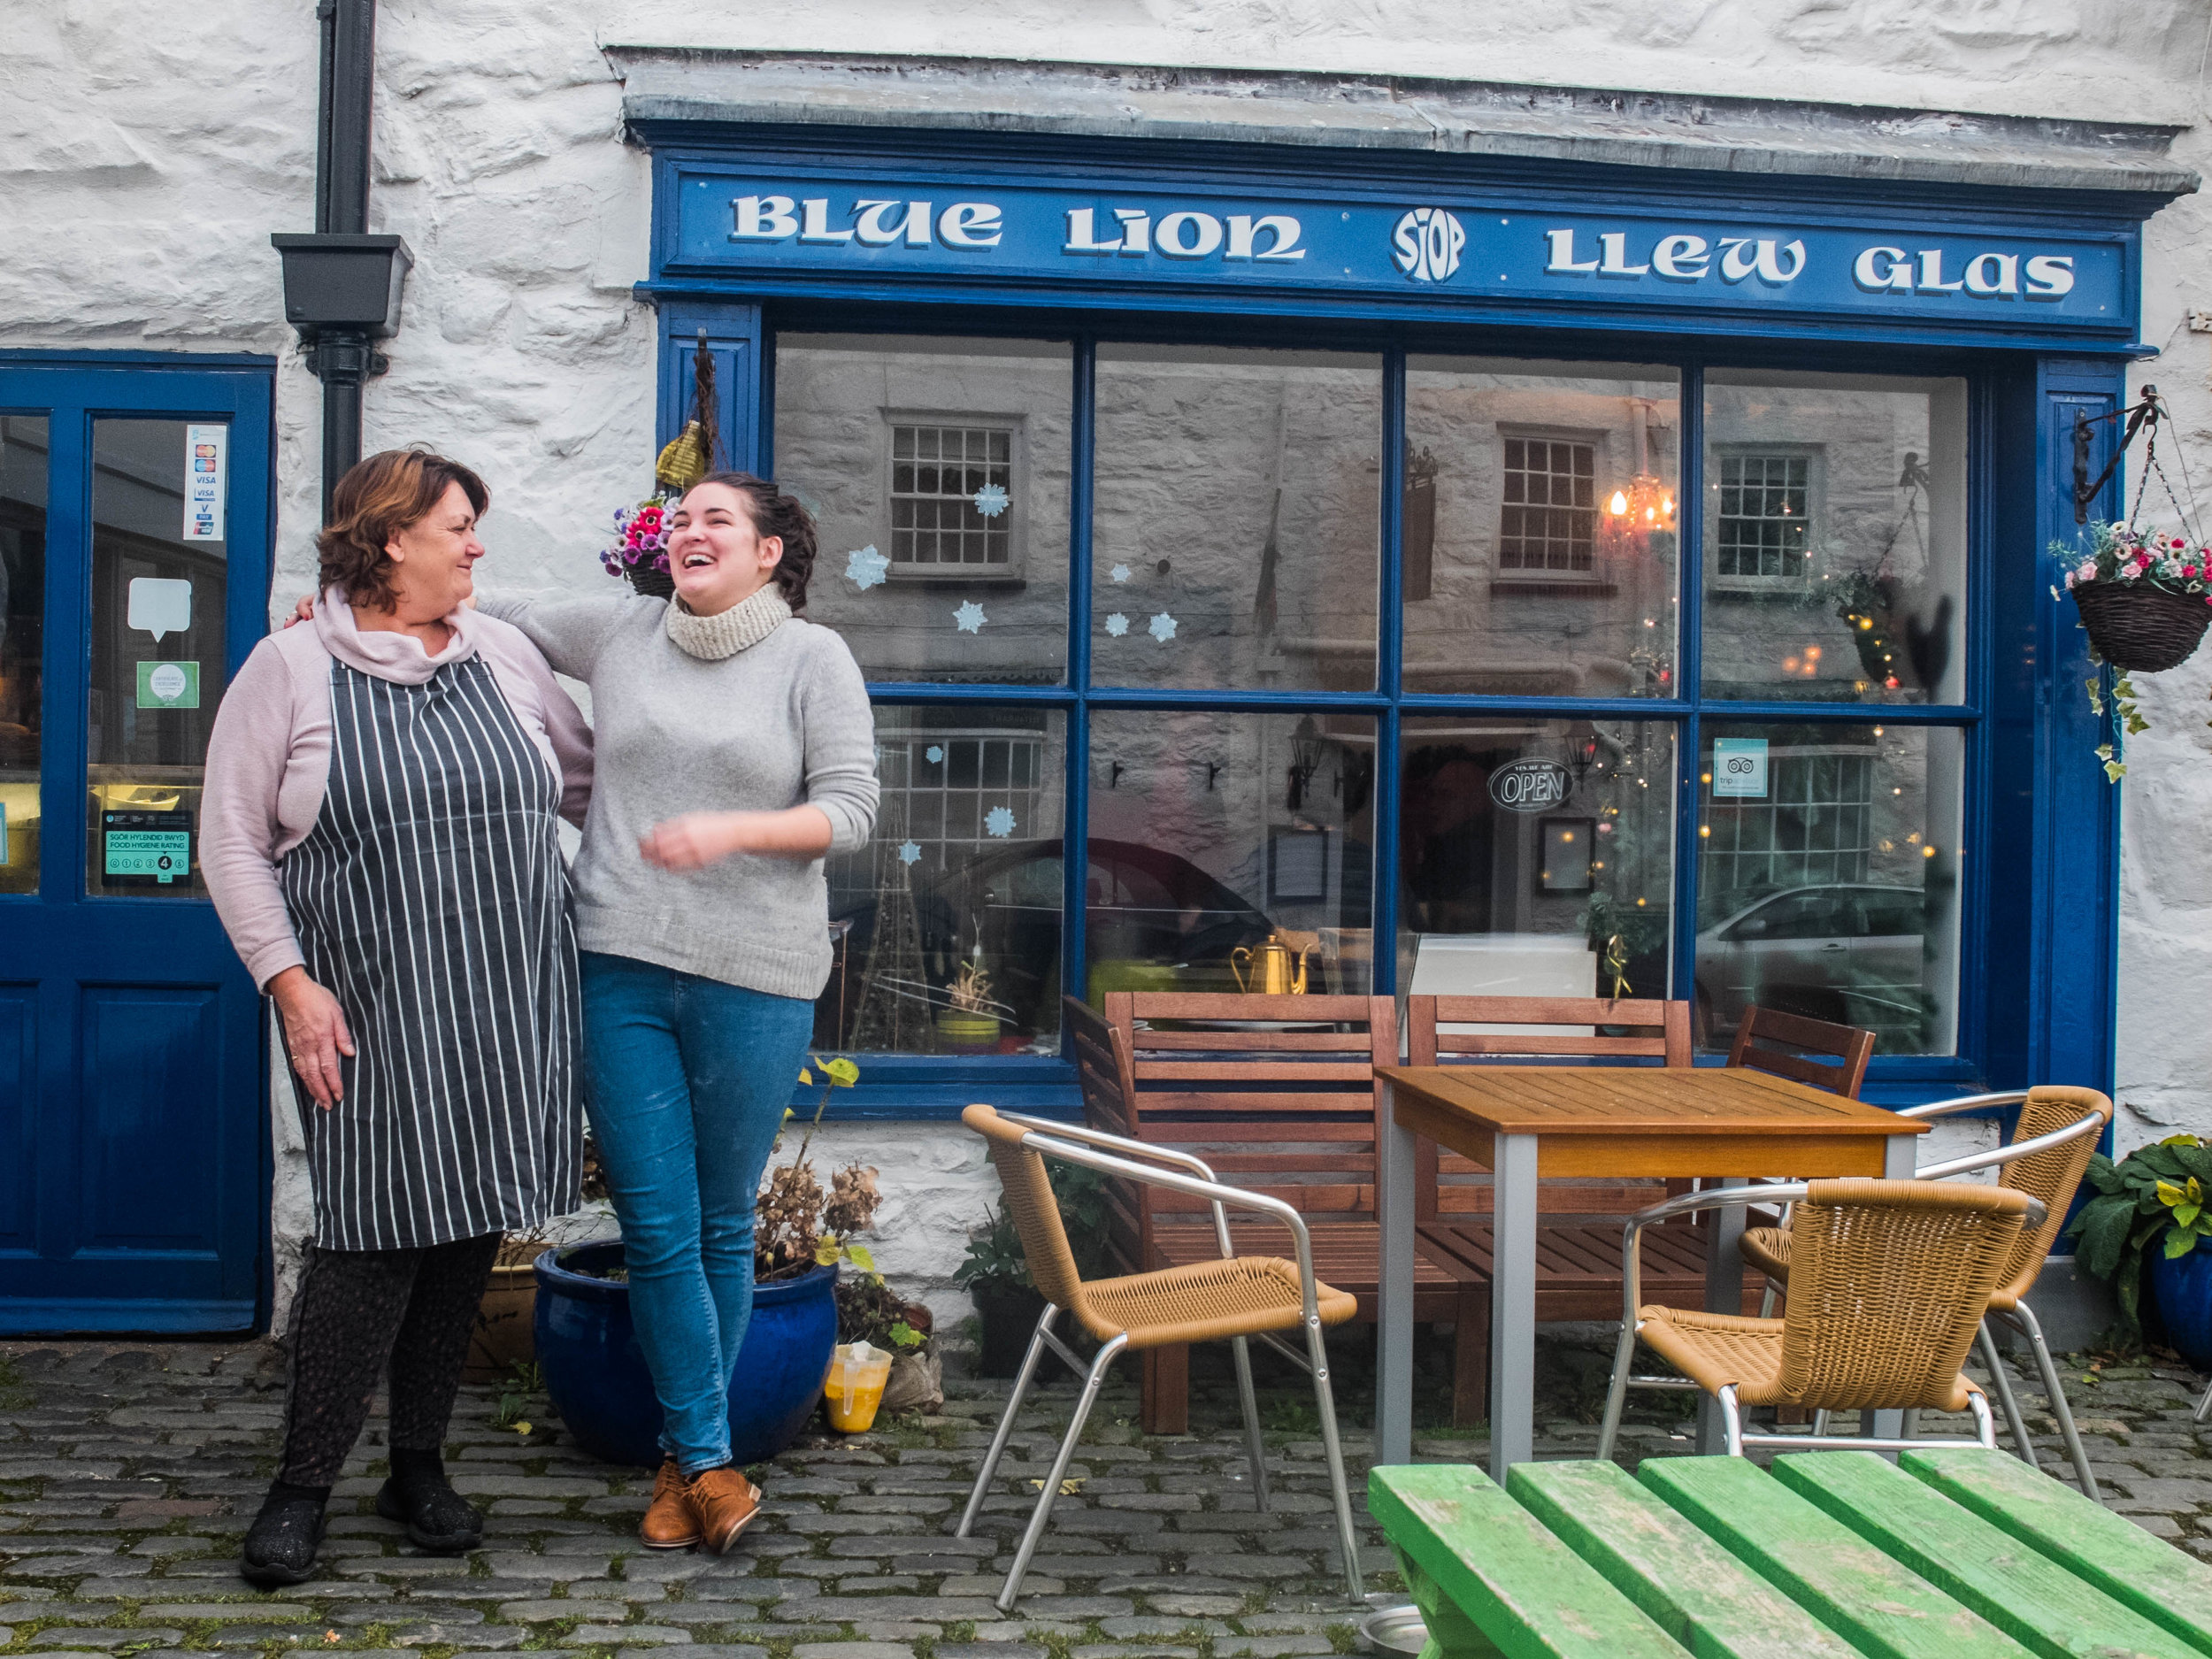 outside the Llew Glas cafe, on the Blue Lion square in Harlech